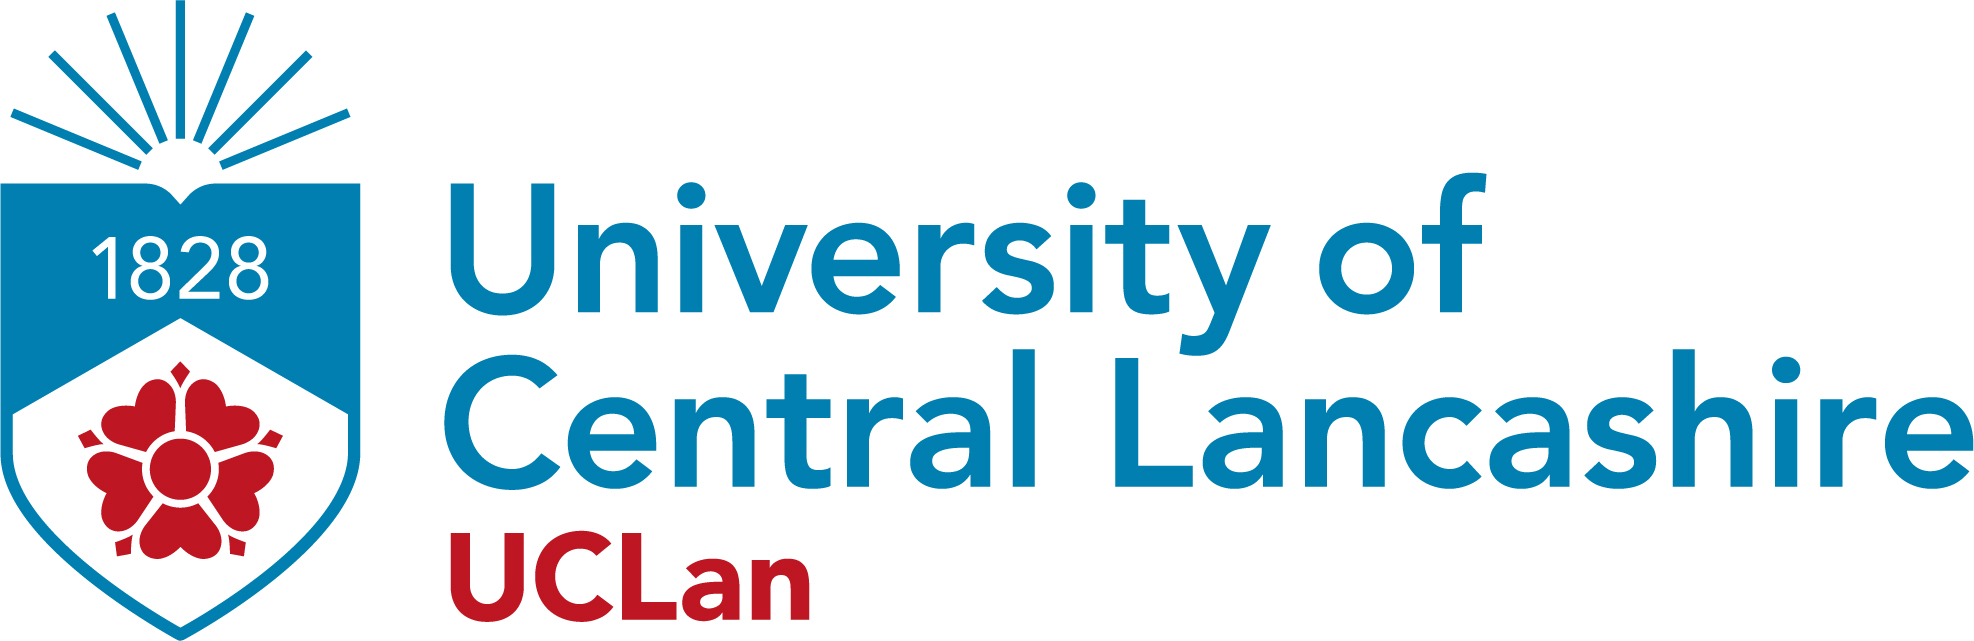 Meeting with University of Central Lancashire